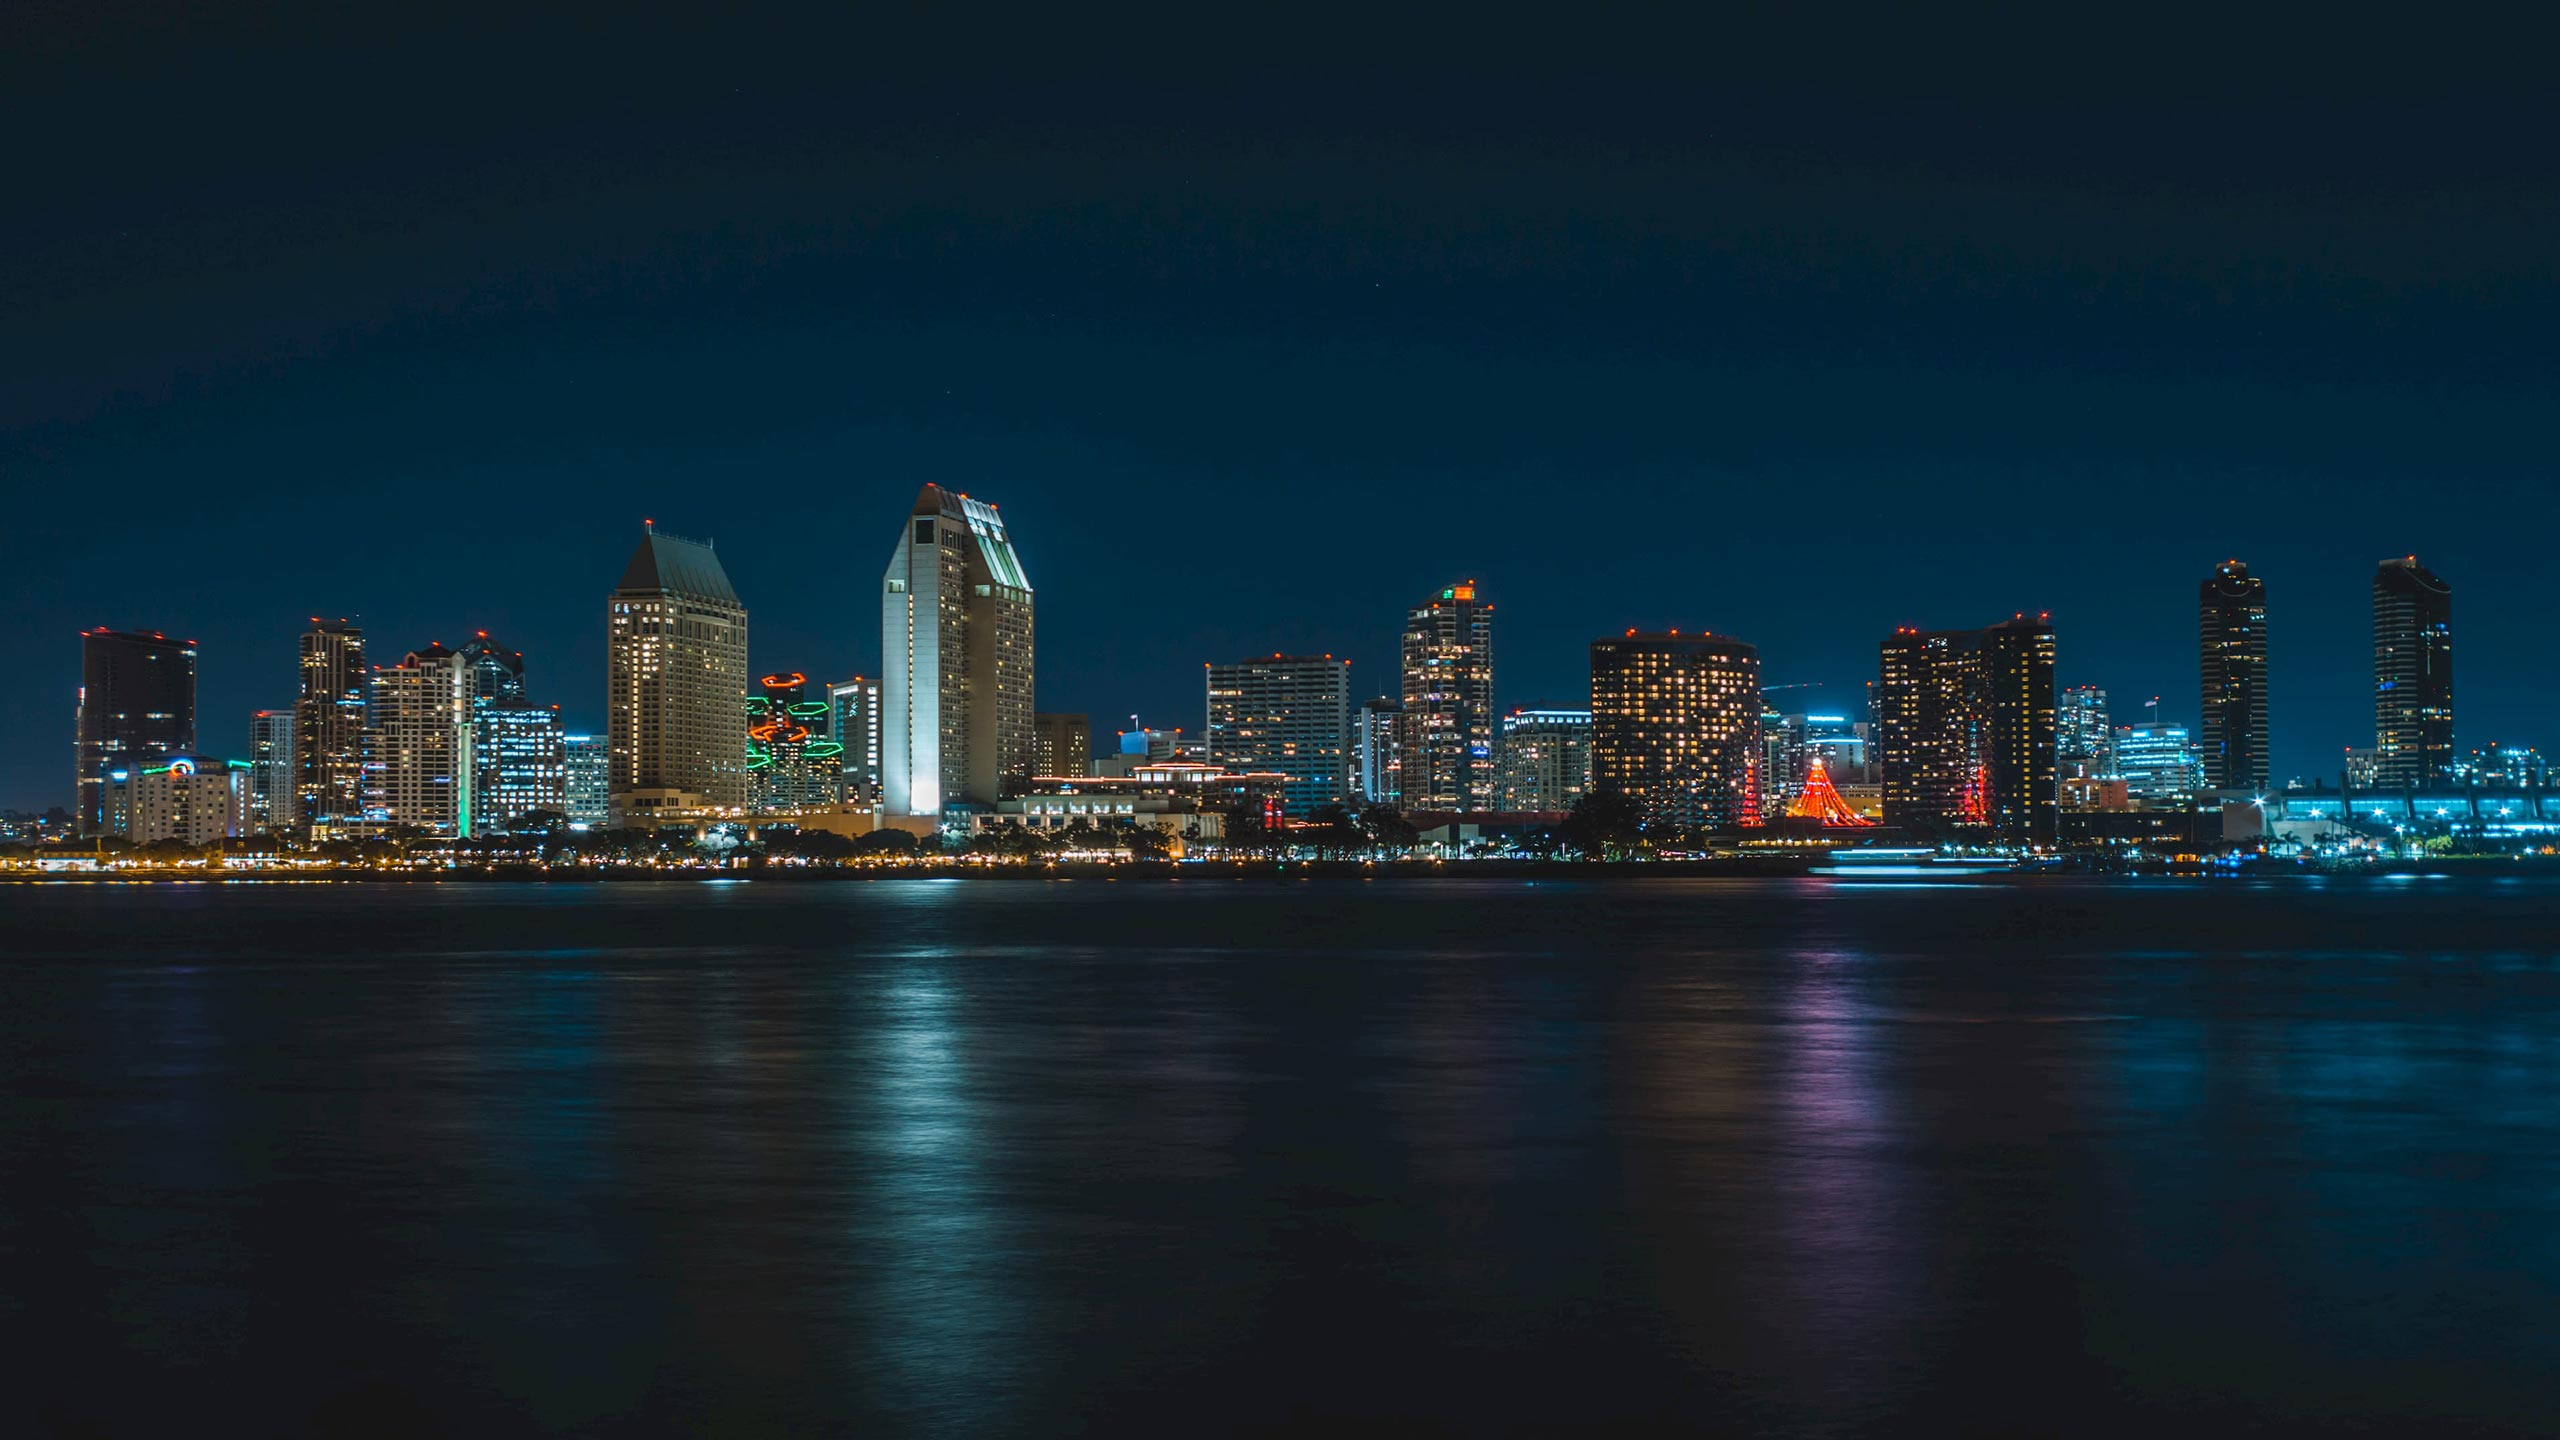 San Diego at night from ocean